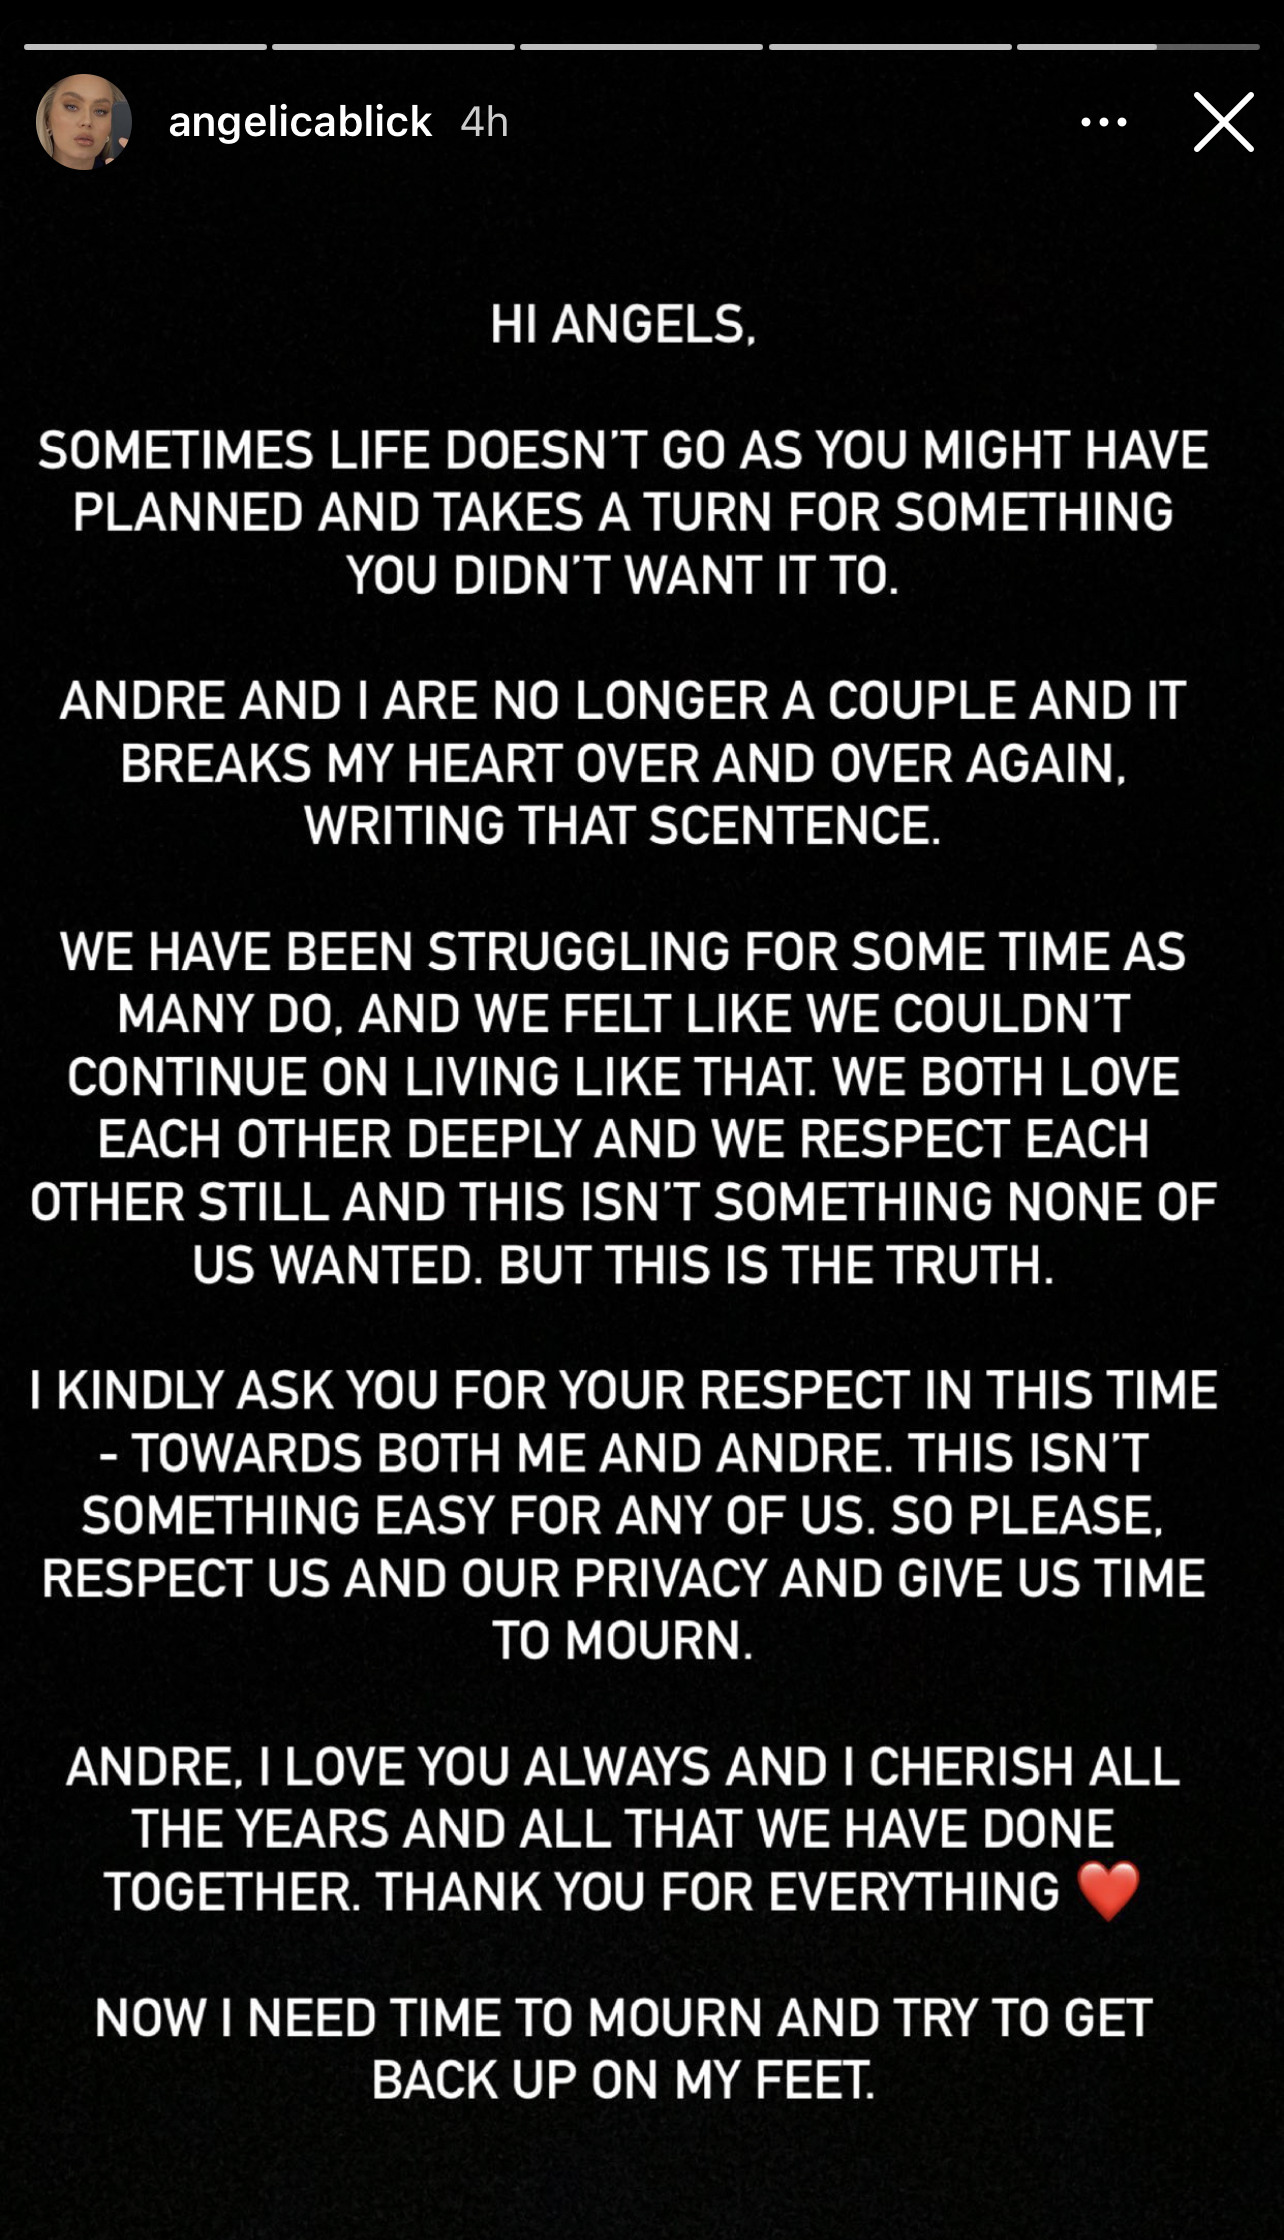 Angelica: Hi Angels, Sometimes life doesn't go as you might have planned and takes a turn for something you didn't want it to. André and I are no longer a couple and it breaks my heart over and over again, writing that sentence. We have been struggling for some time as many do, and we felt like we couldn't continue on living like that. We both love each other deeply and we respect each other still and this sin't something none of us wanted. But this is the truth. I kind ask you for your respect in this time - towards both me and Andre. This isn't something easy for any of us. So please, respect us and our privacy and give us time to mourn. Andre, I love you always and I cherish all the years and all that we have done together. Thank you for everything. <3 Now I need to mourn and try to get back up on my feet.